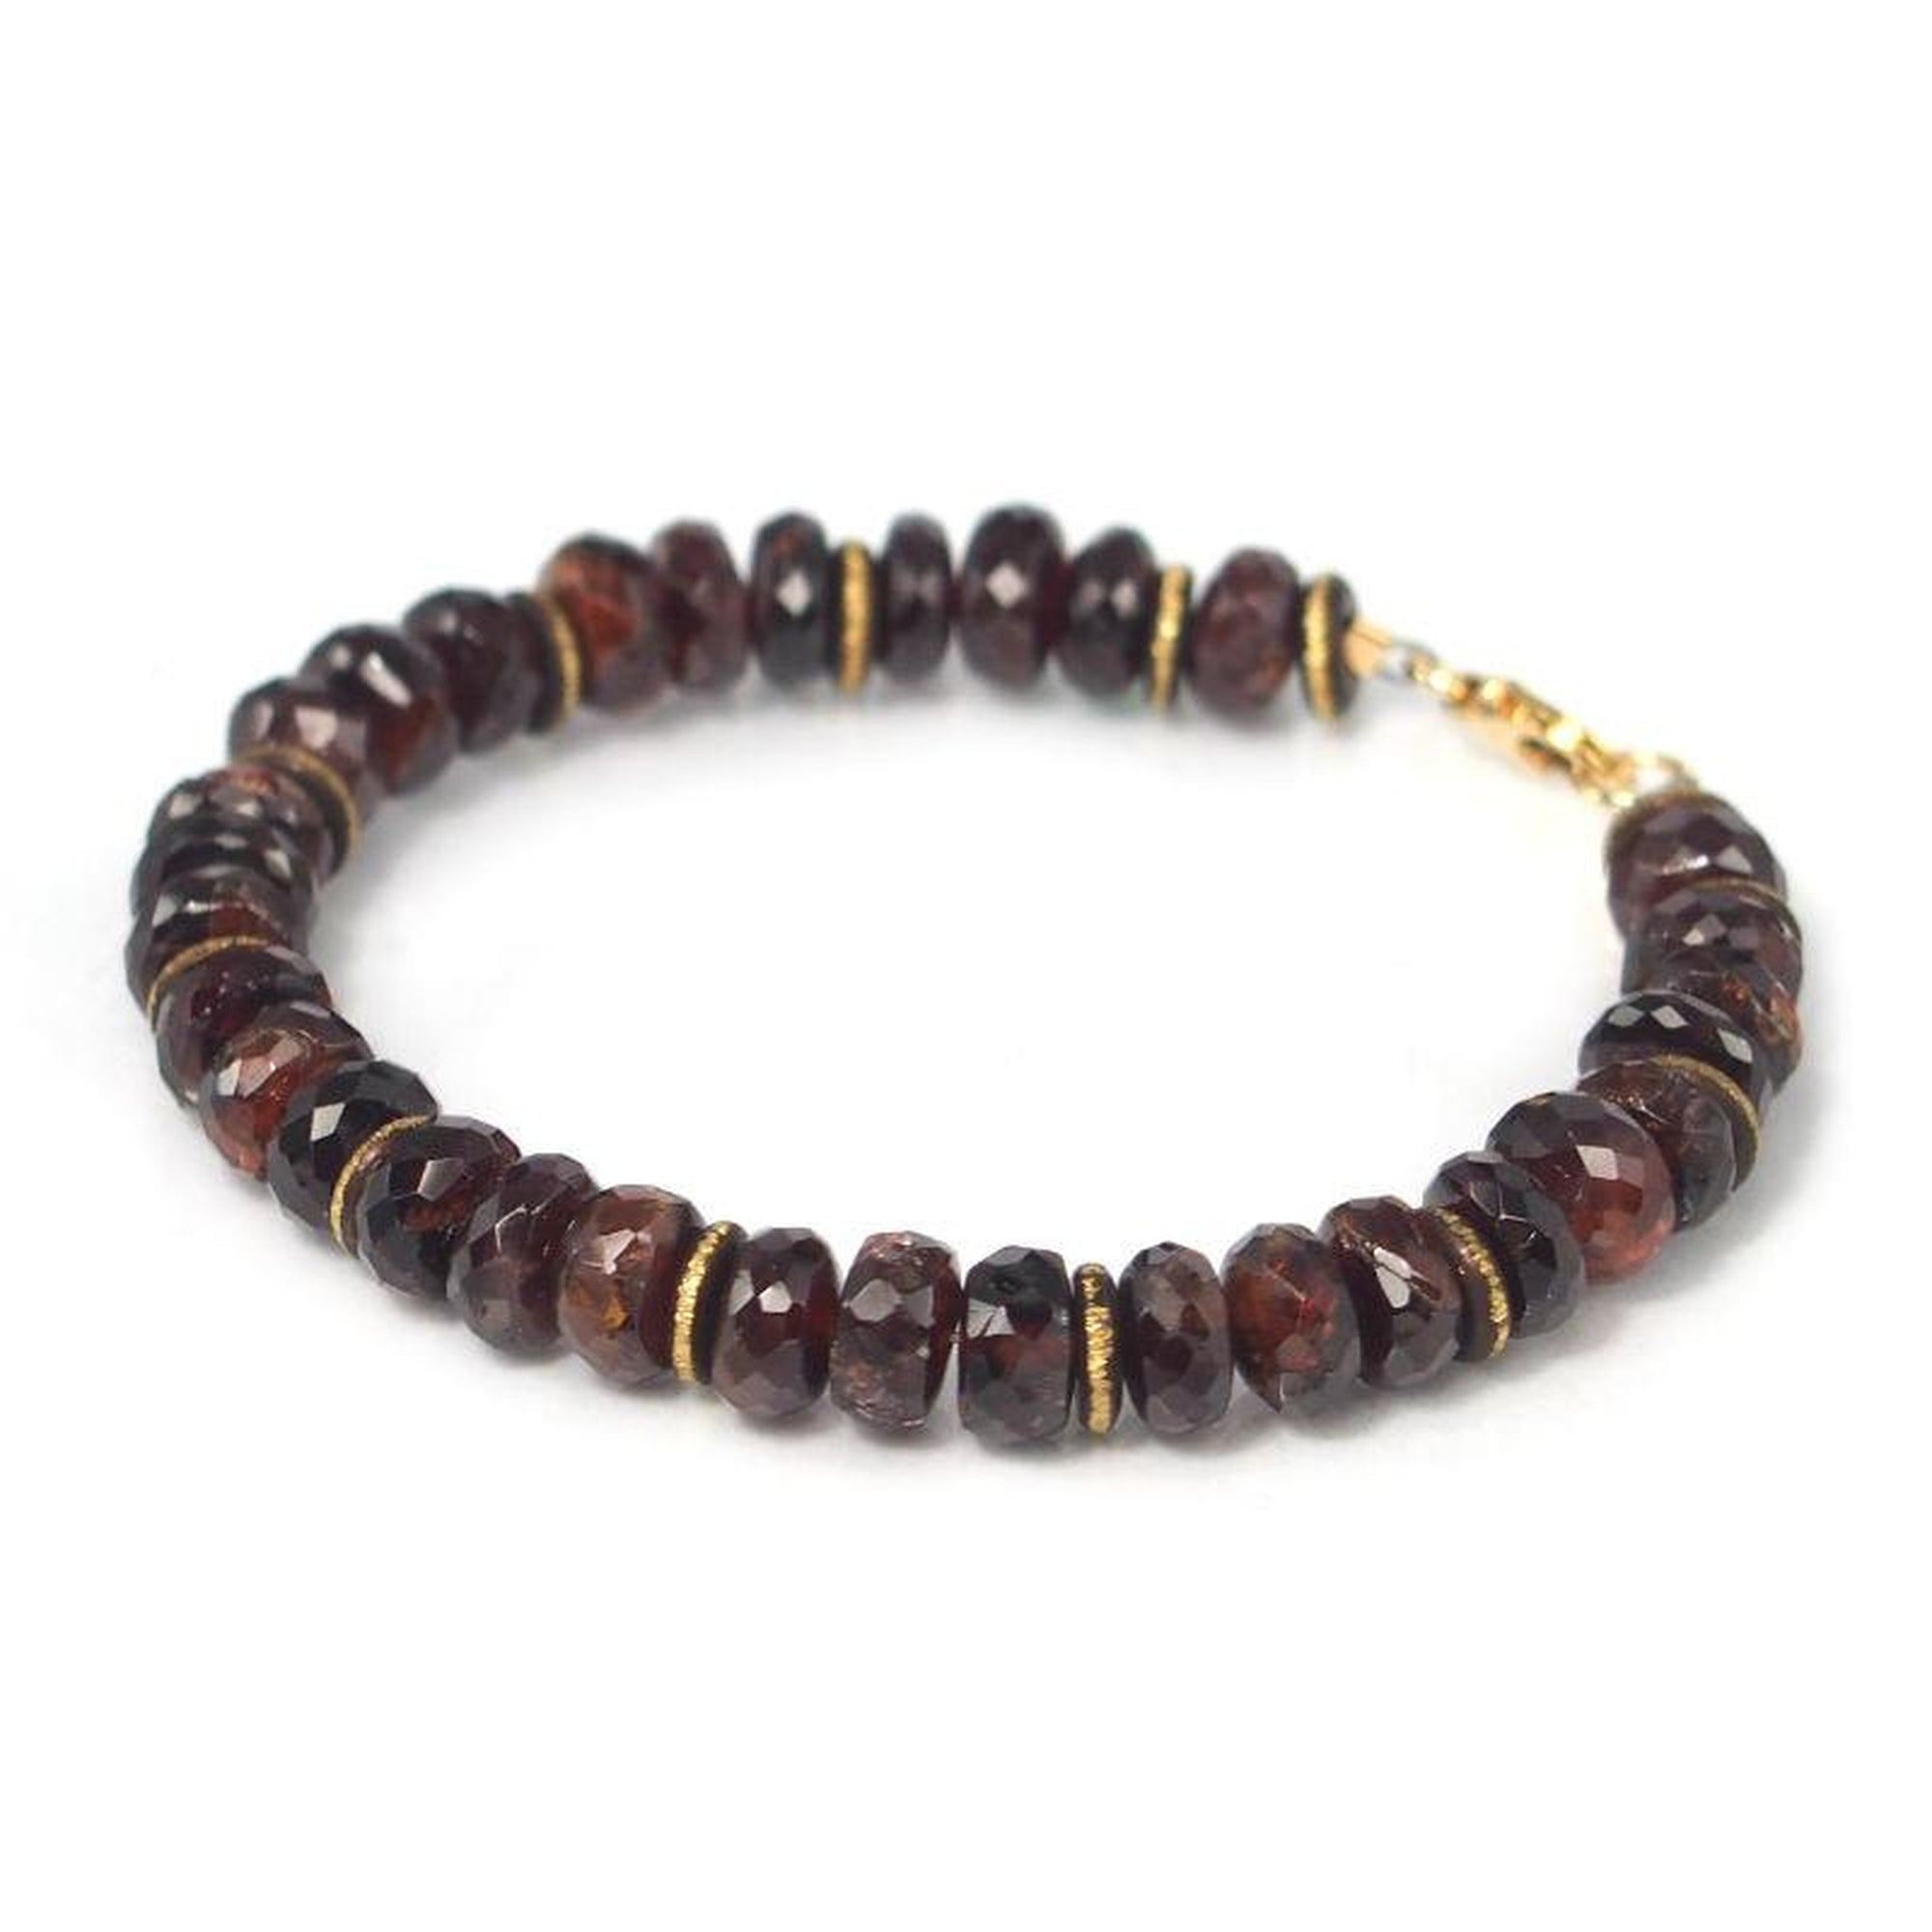 garnet xpress collection jasper gemstones zodiac annie red bead dark stone products gemstone bracelet collections flat